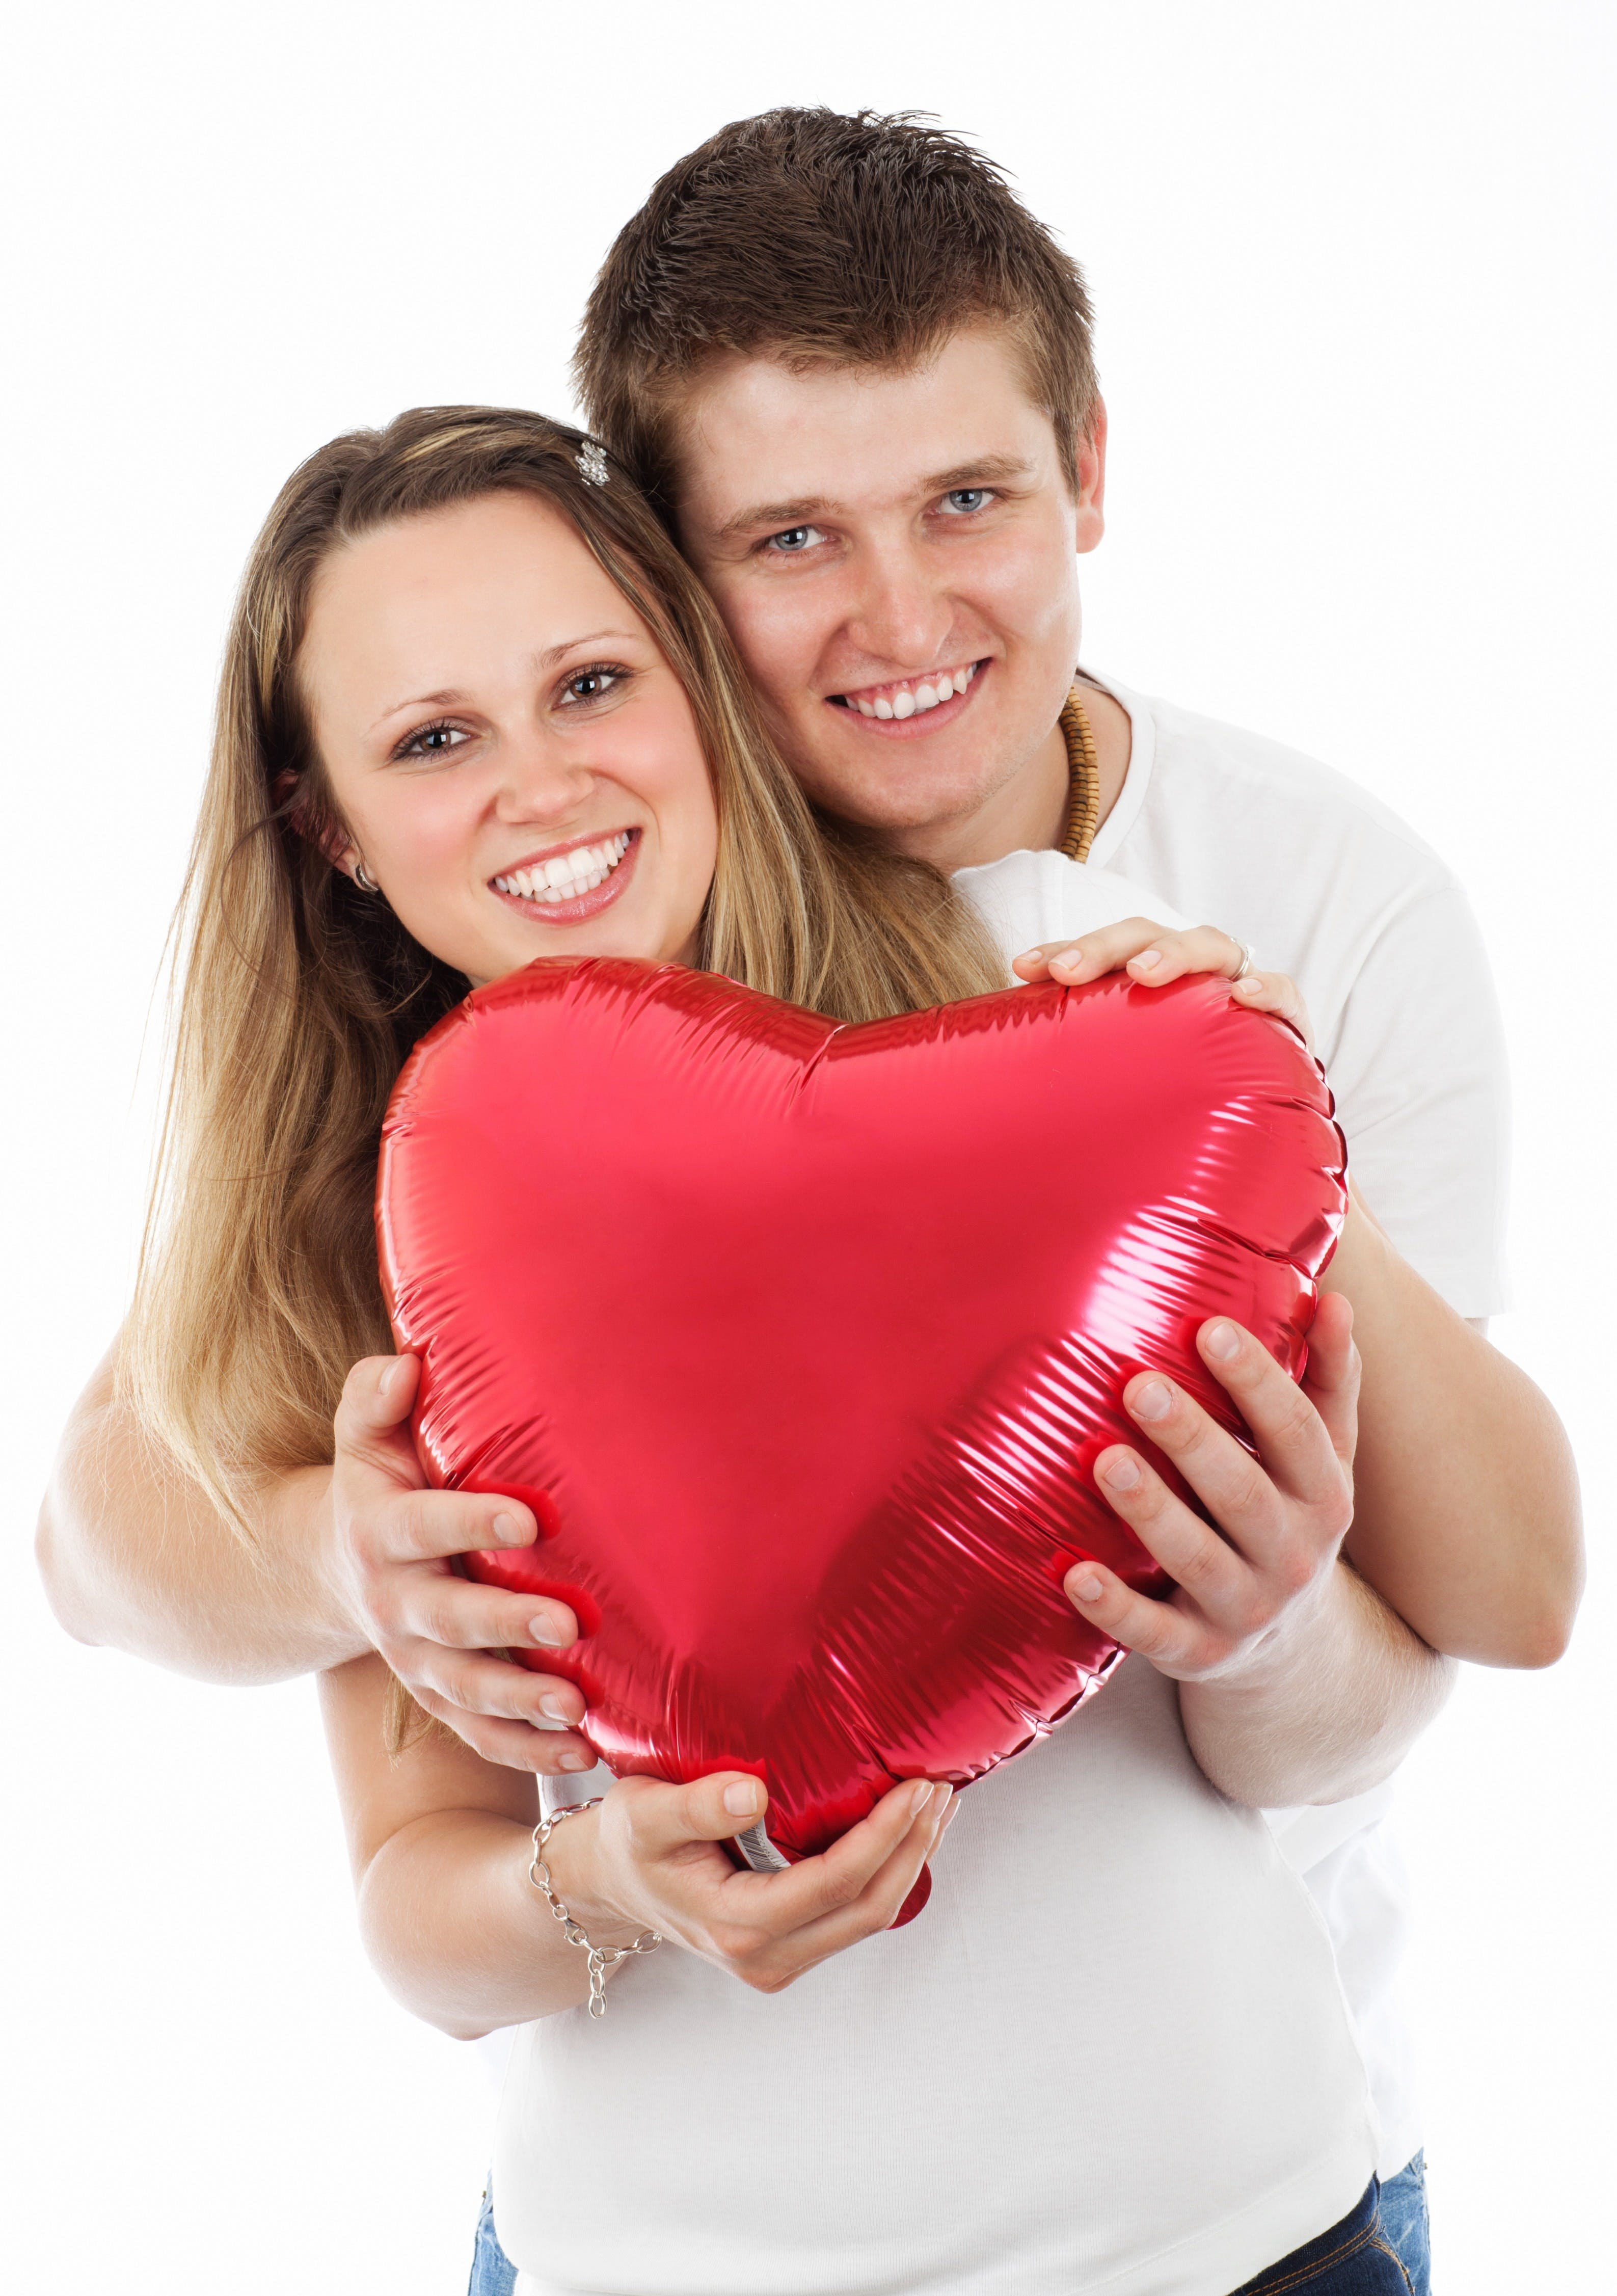 Man and Woman Holding Inflatable Heart